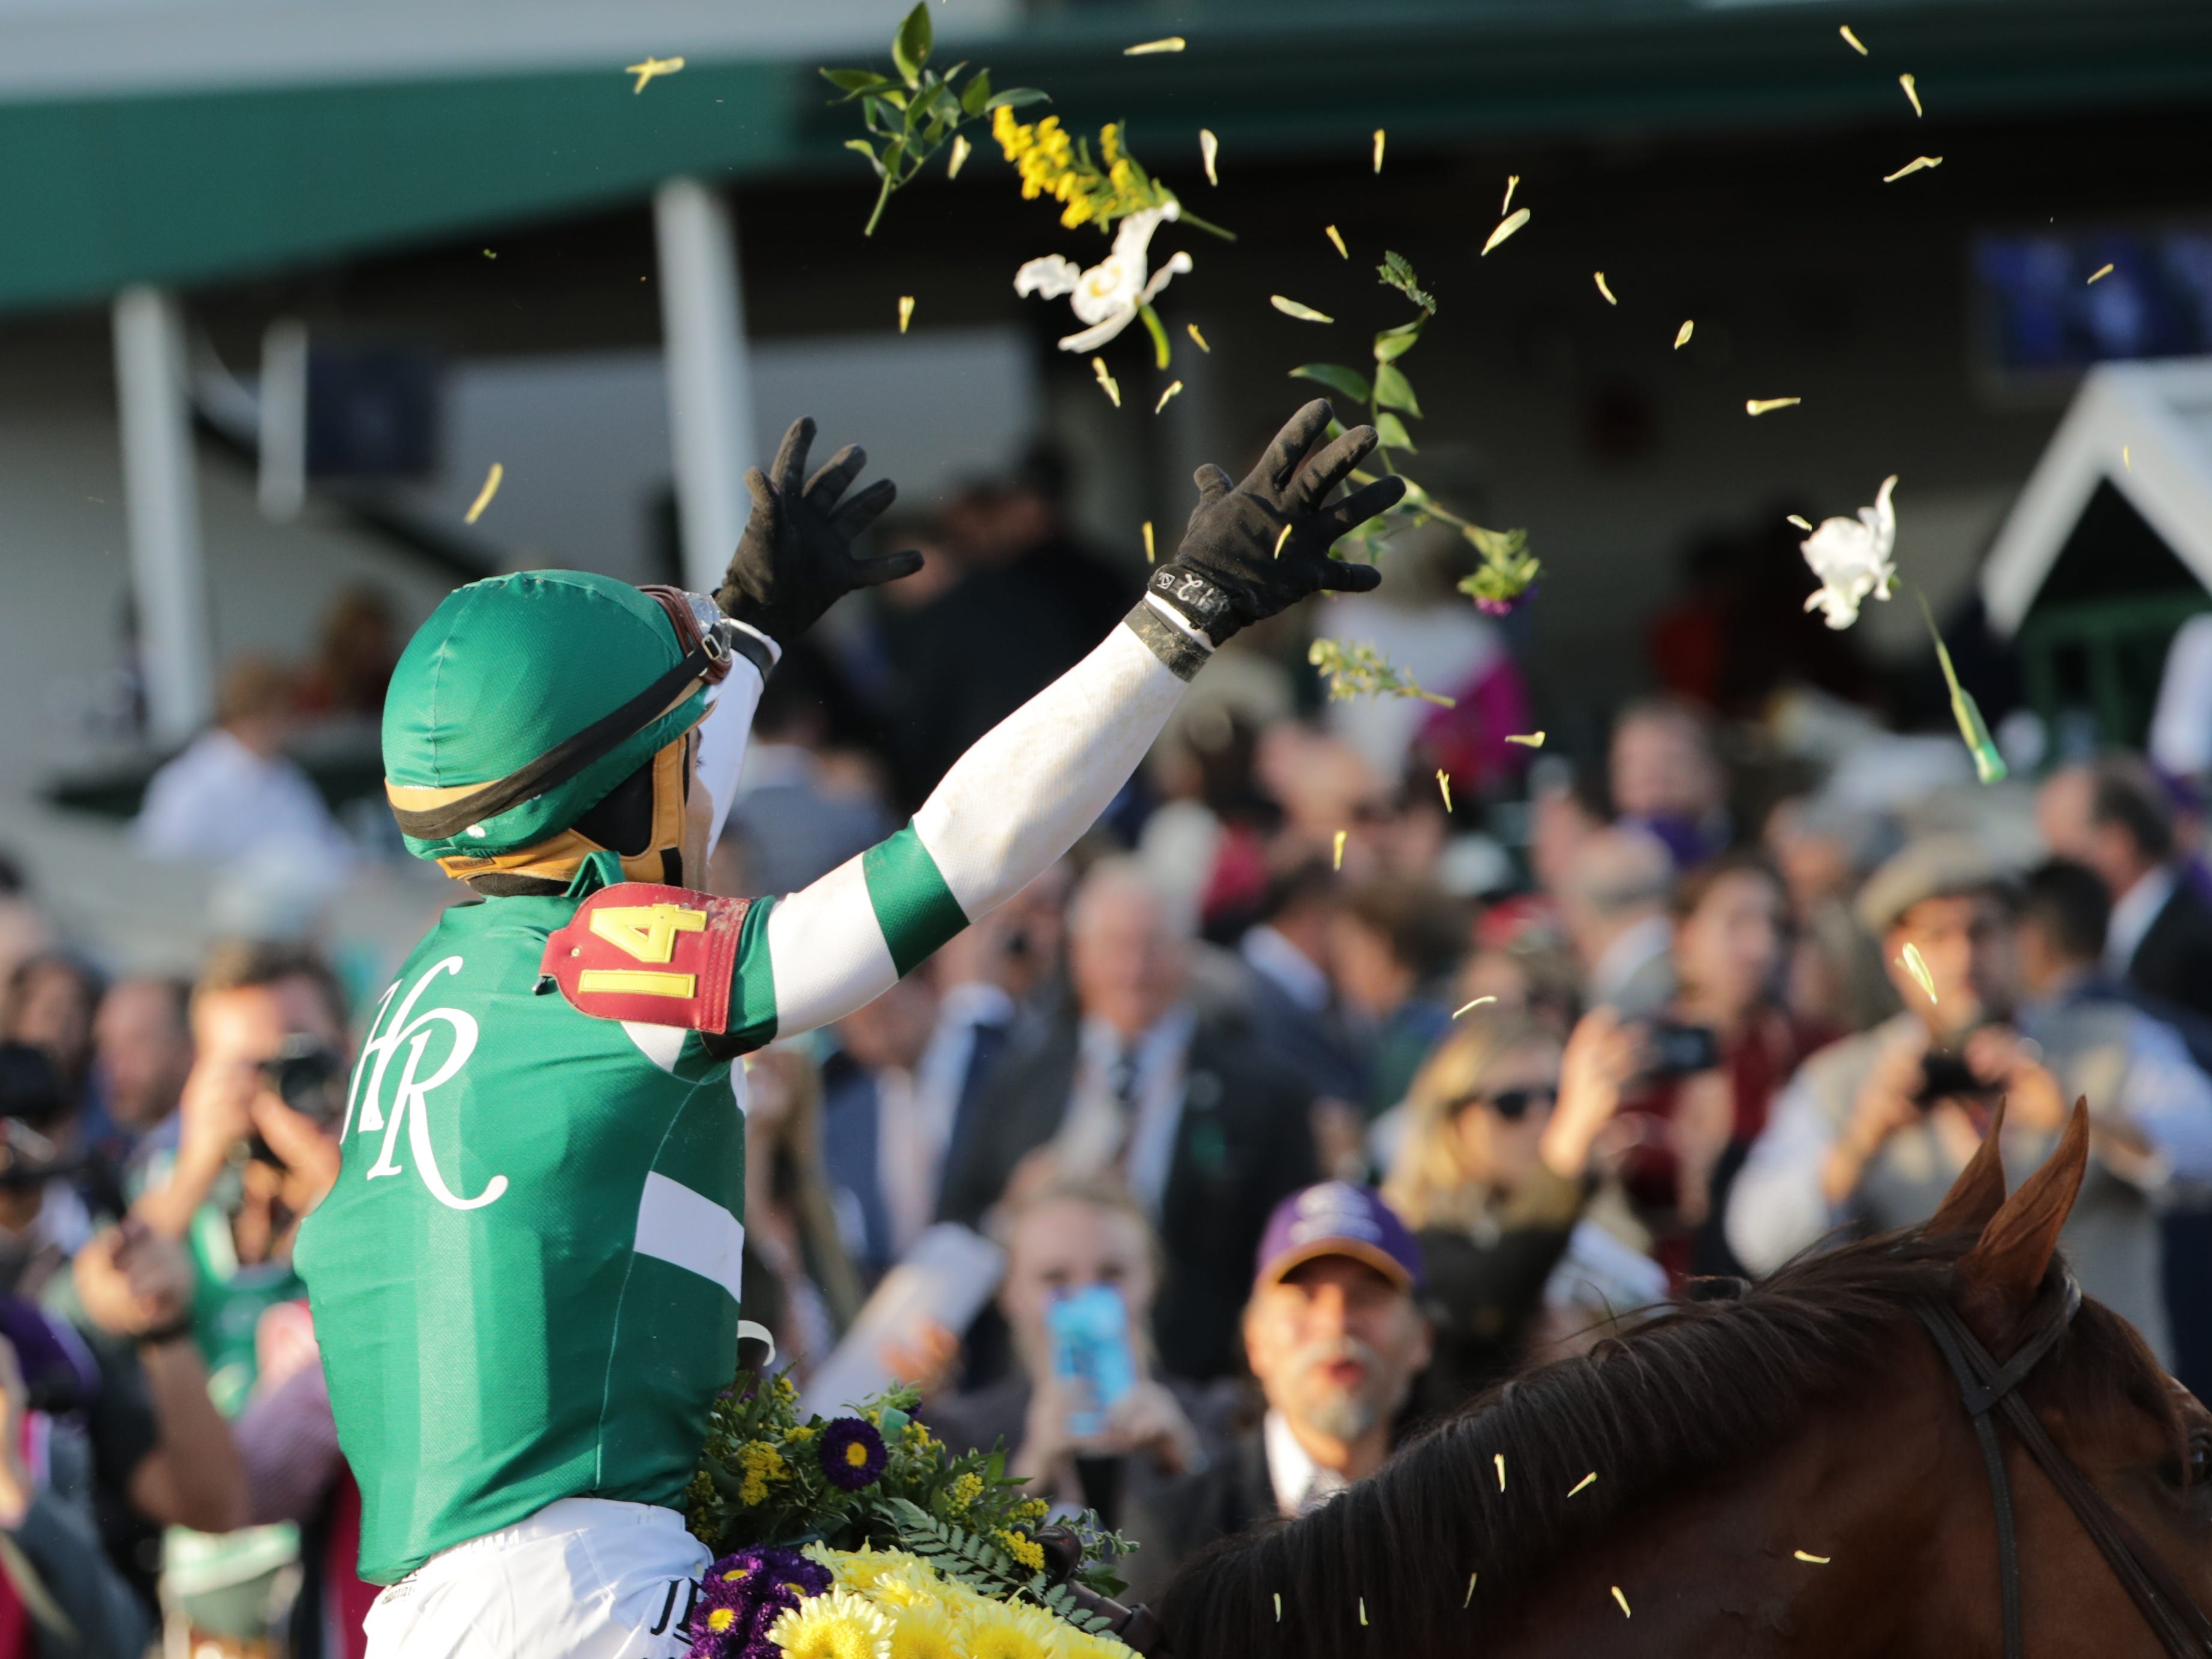 Jockey Joel Rosario tosses flowers in the air after winning the Breeders' Cup Classic aboard Accelerate. Nov. 3, 2018.